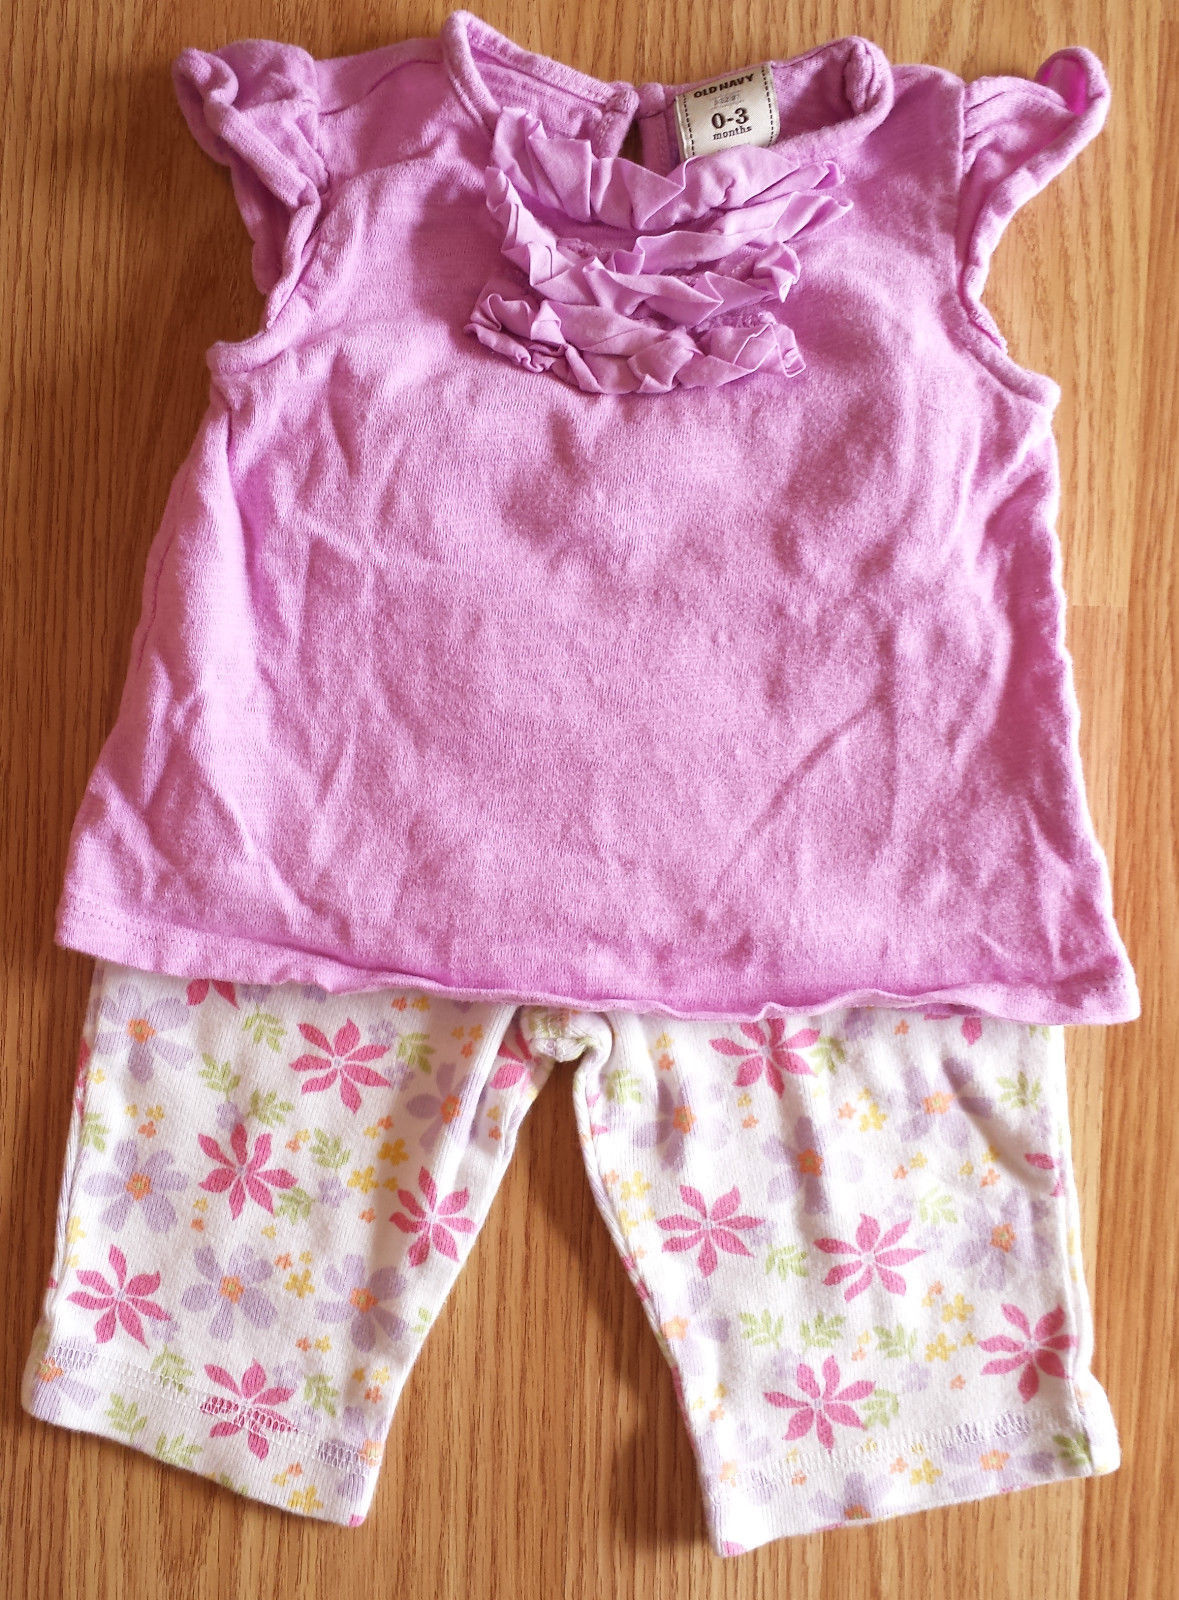 Girl's Size 0-3 M Months Two Piece Old Navy Purple Ruffled Top & Floral Pants